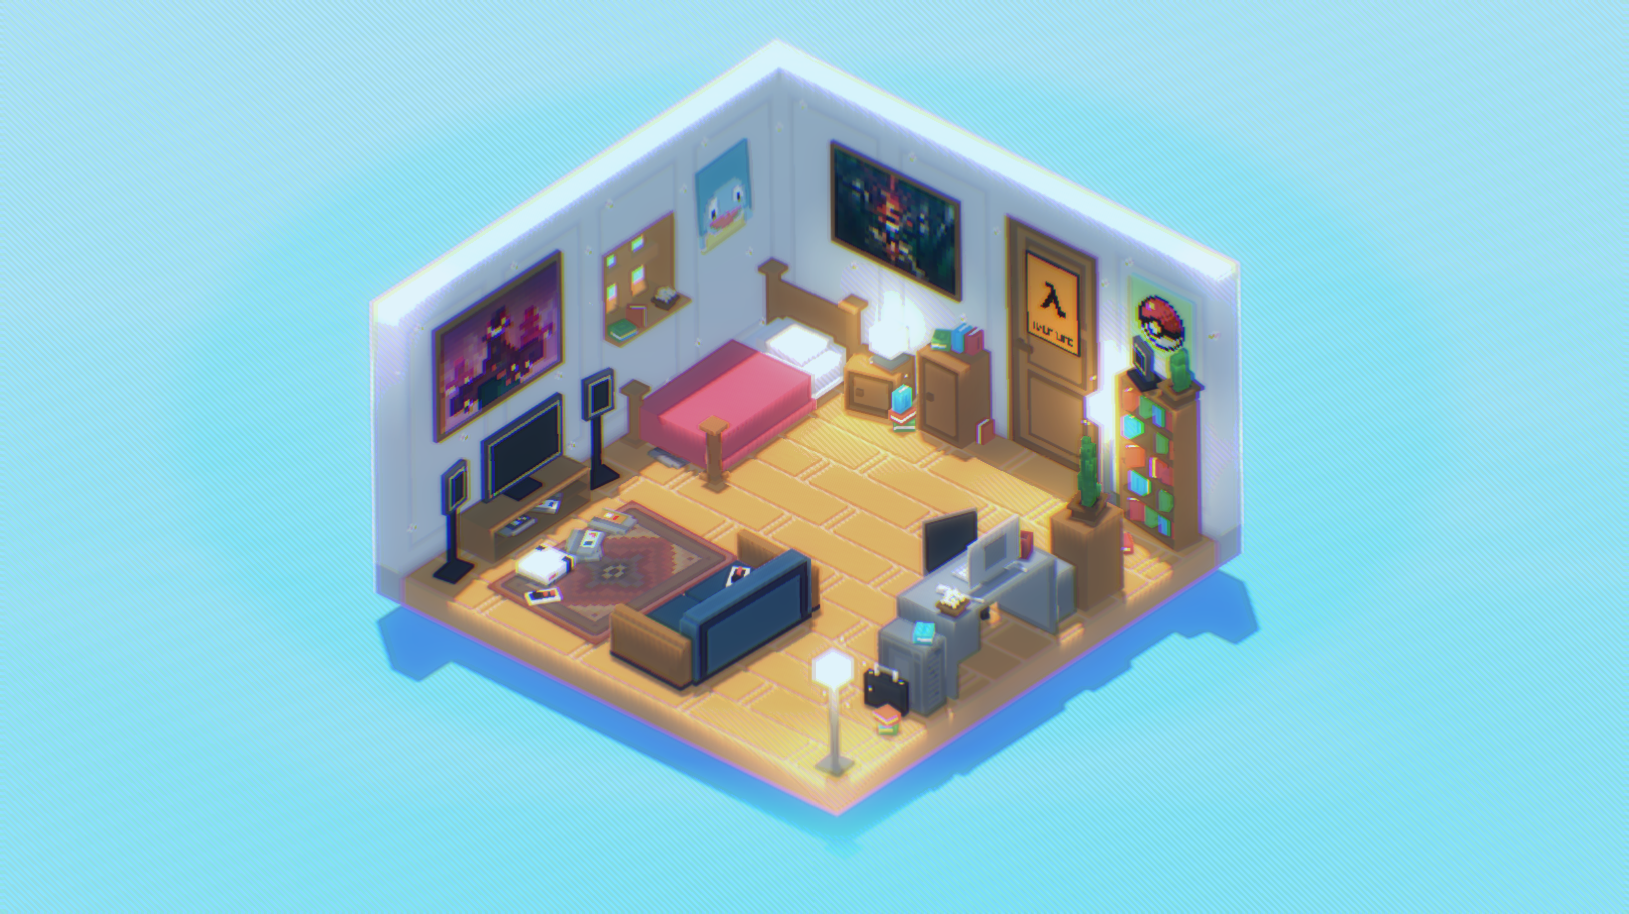 Interior House & Office Assets - Voxel